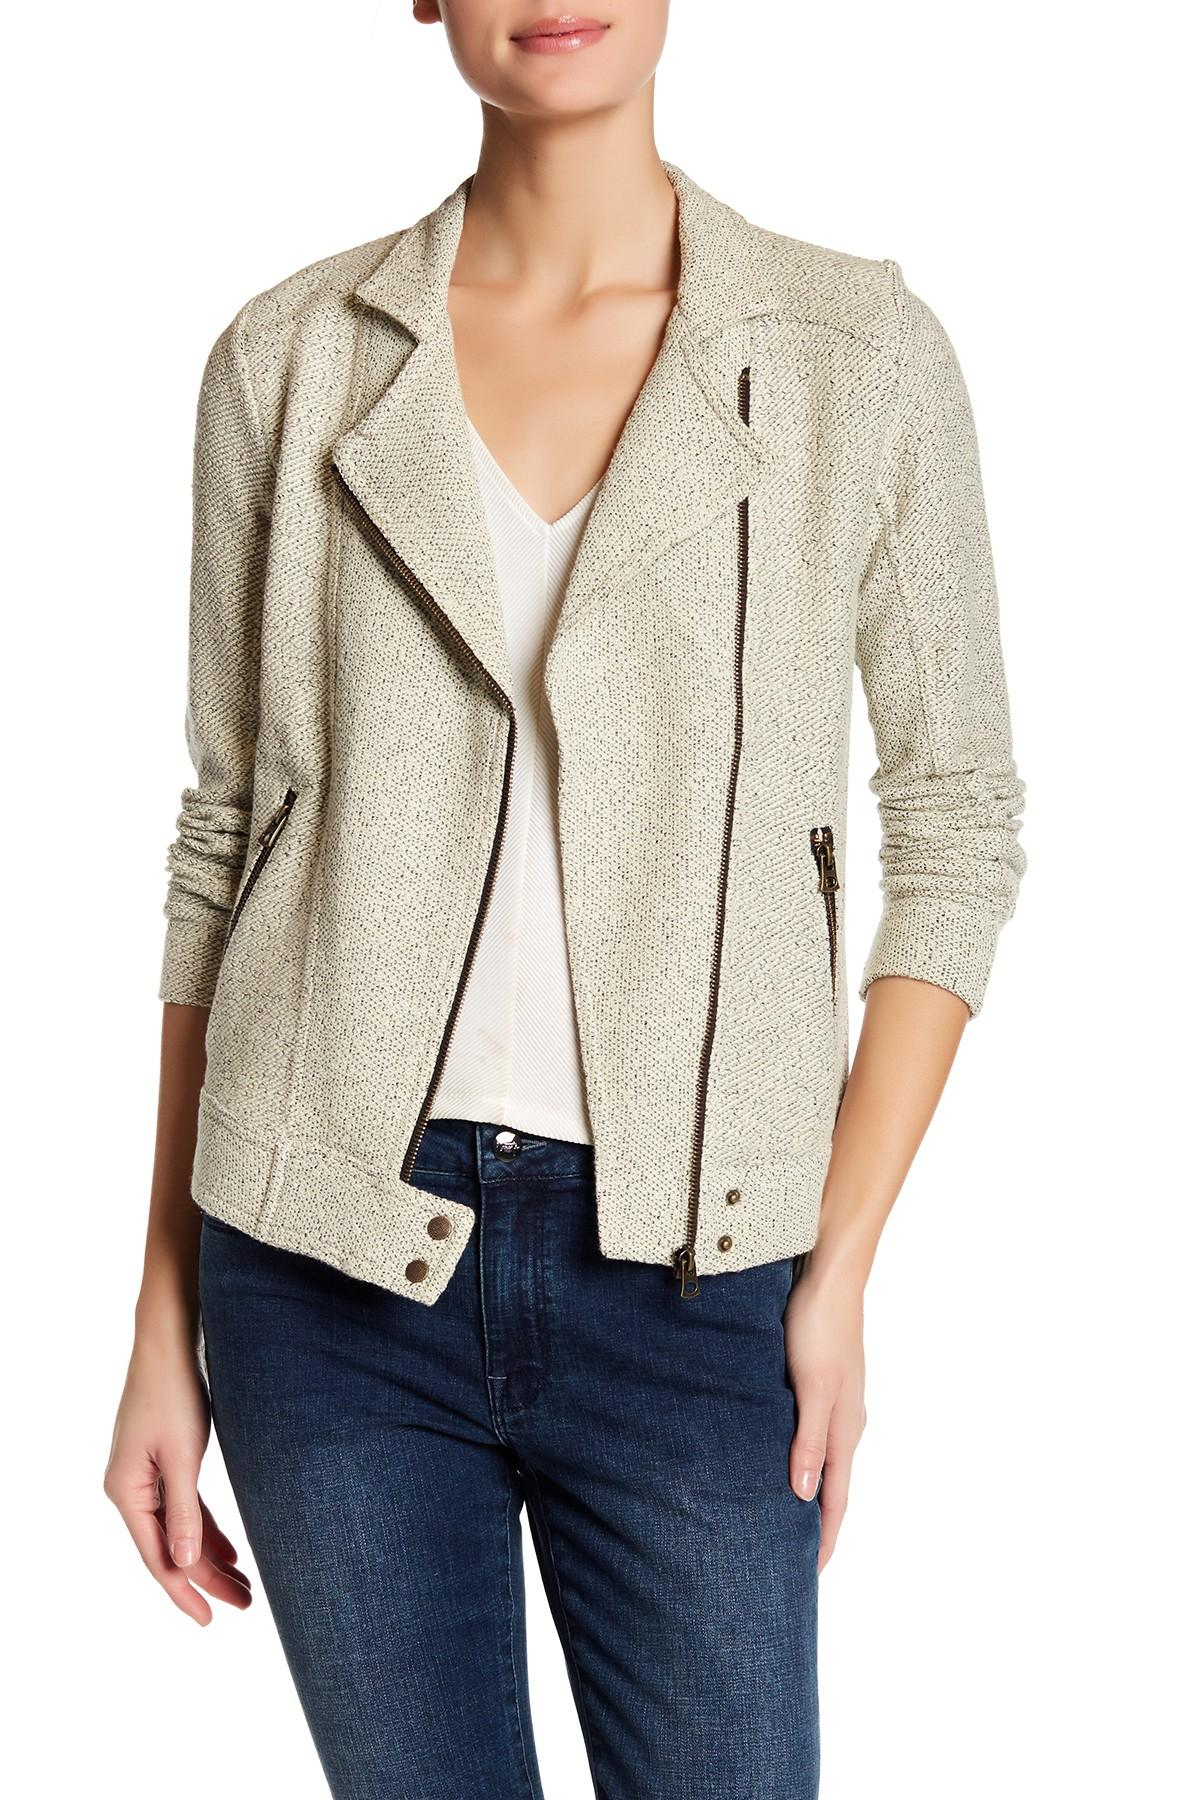 Lyst - Lucky Brand Knit Moto Jacket in Natural